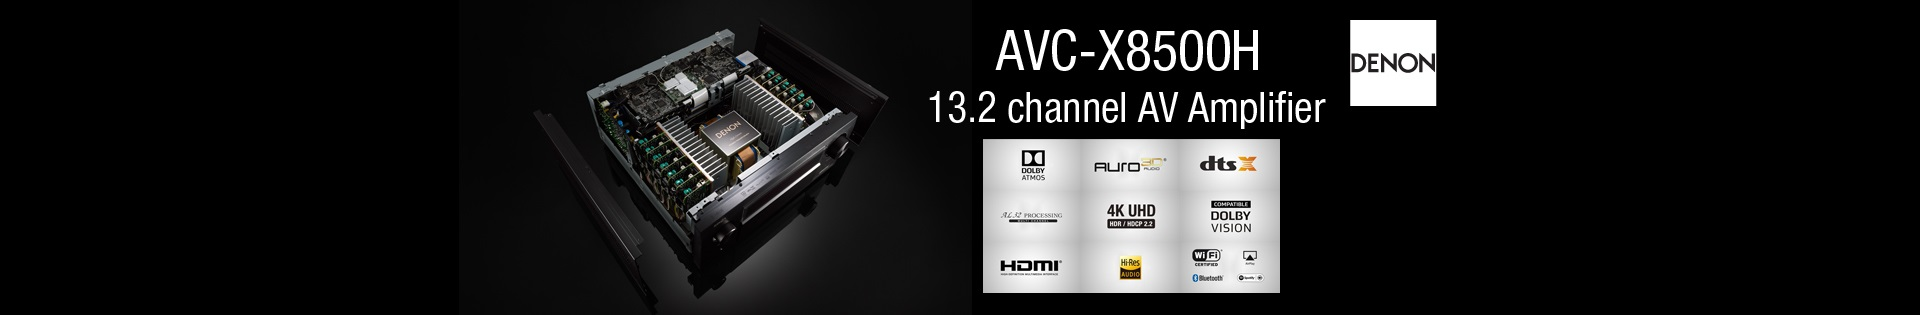 13.2 Channel AVR